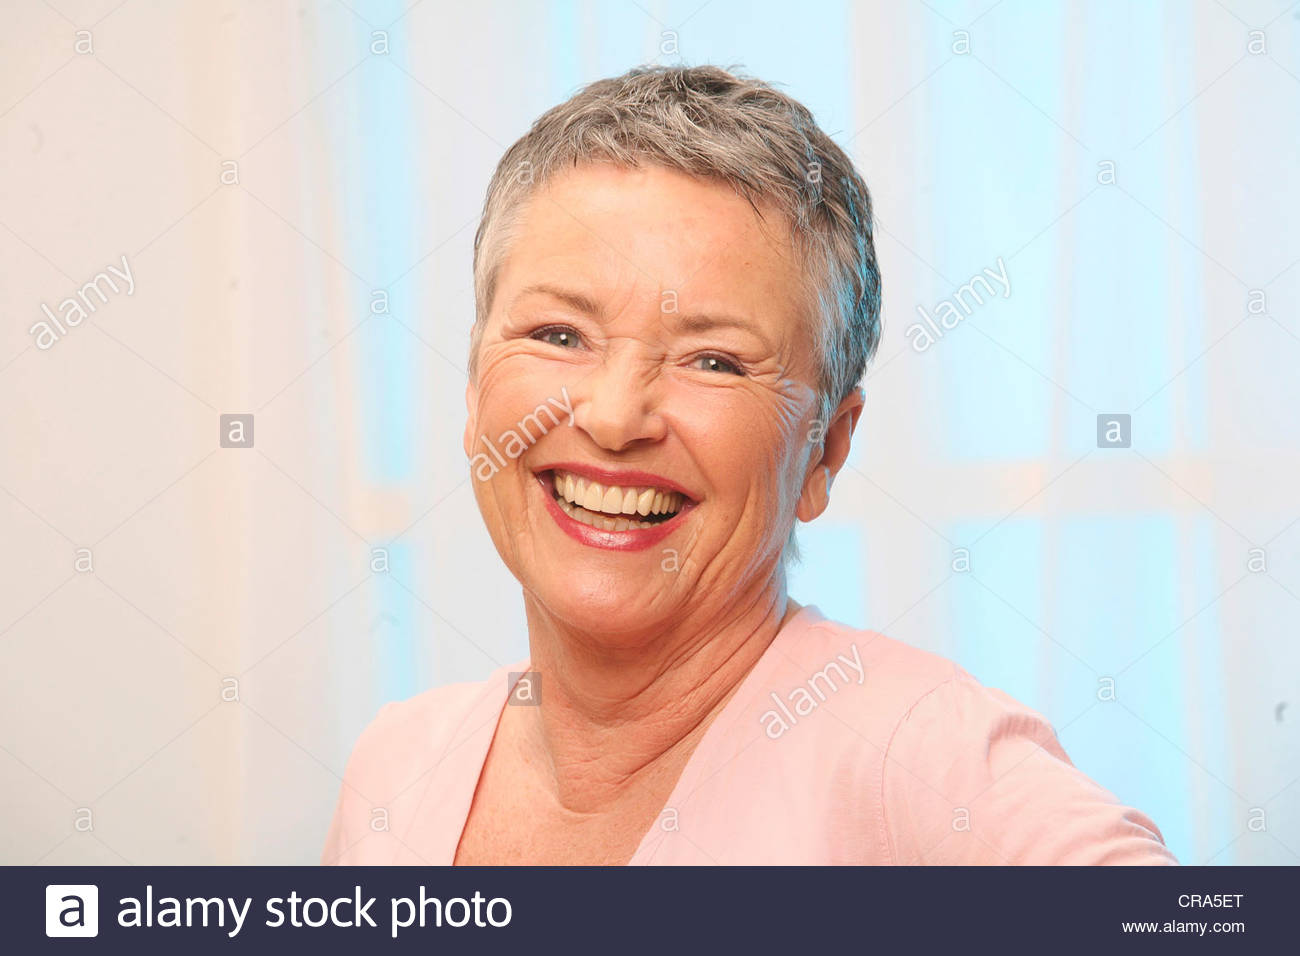 Portrait Of Older Woman With Short Grey Hair Smiling At